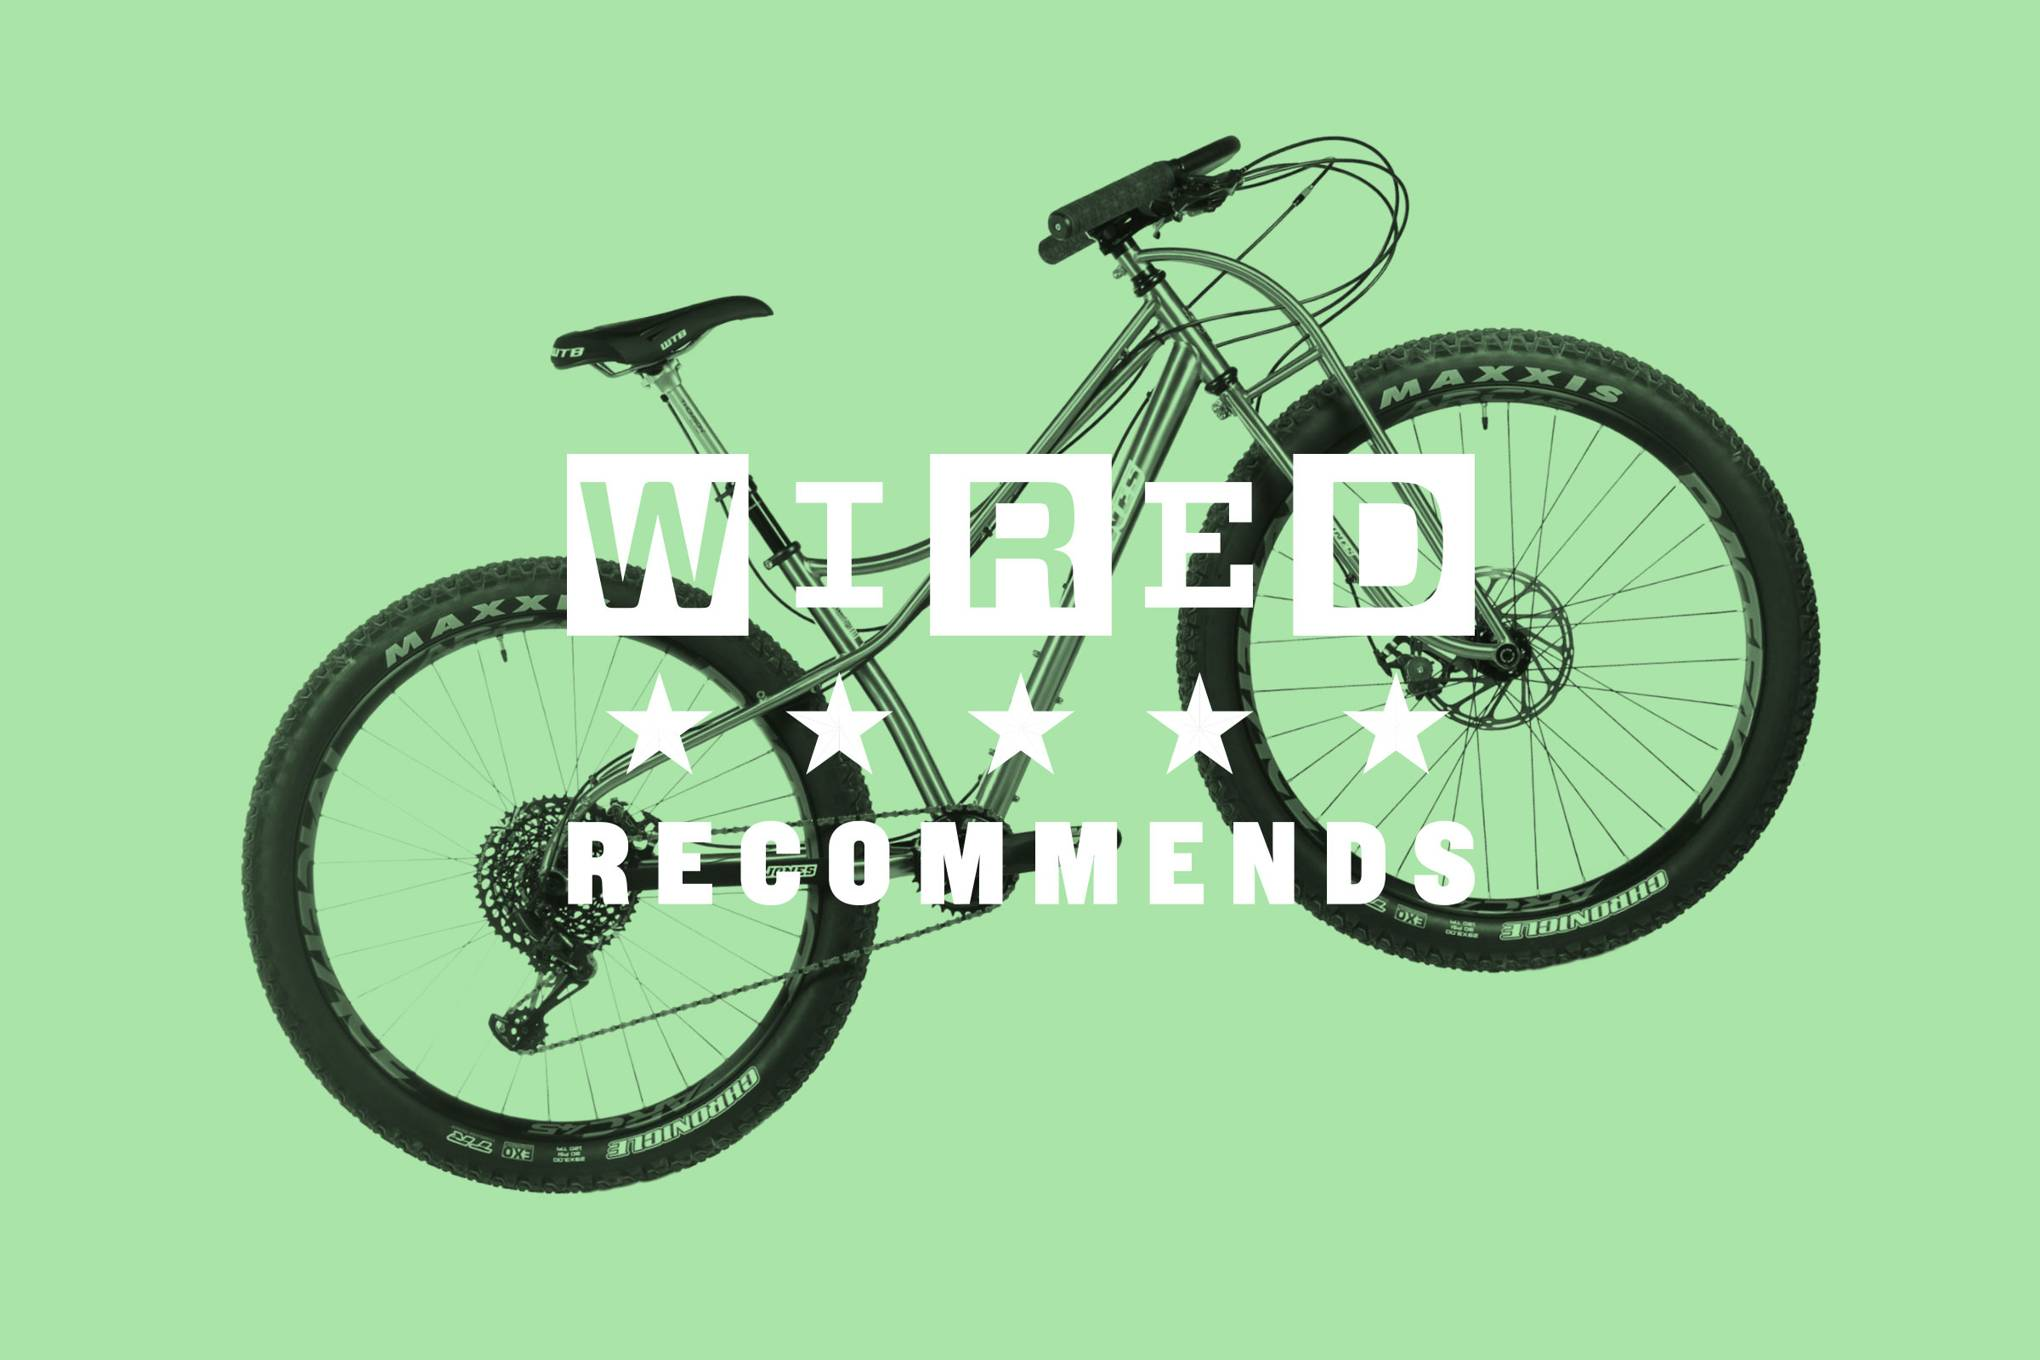 The best mountain bikes you can buy right now in 2018 | WIRED UK